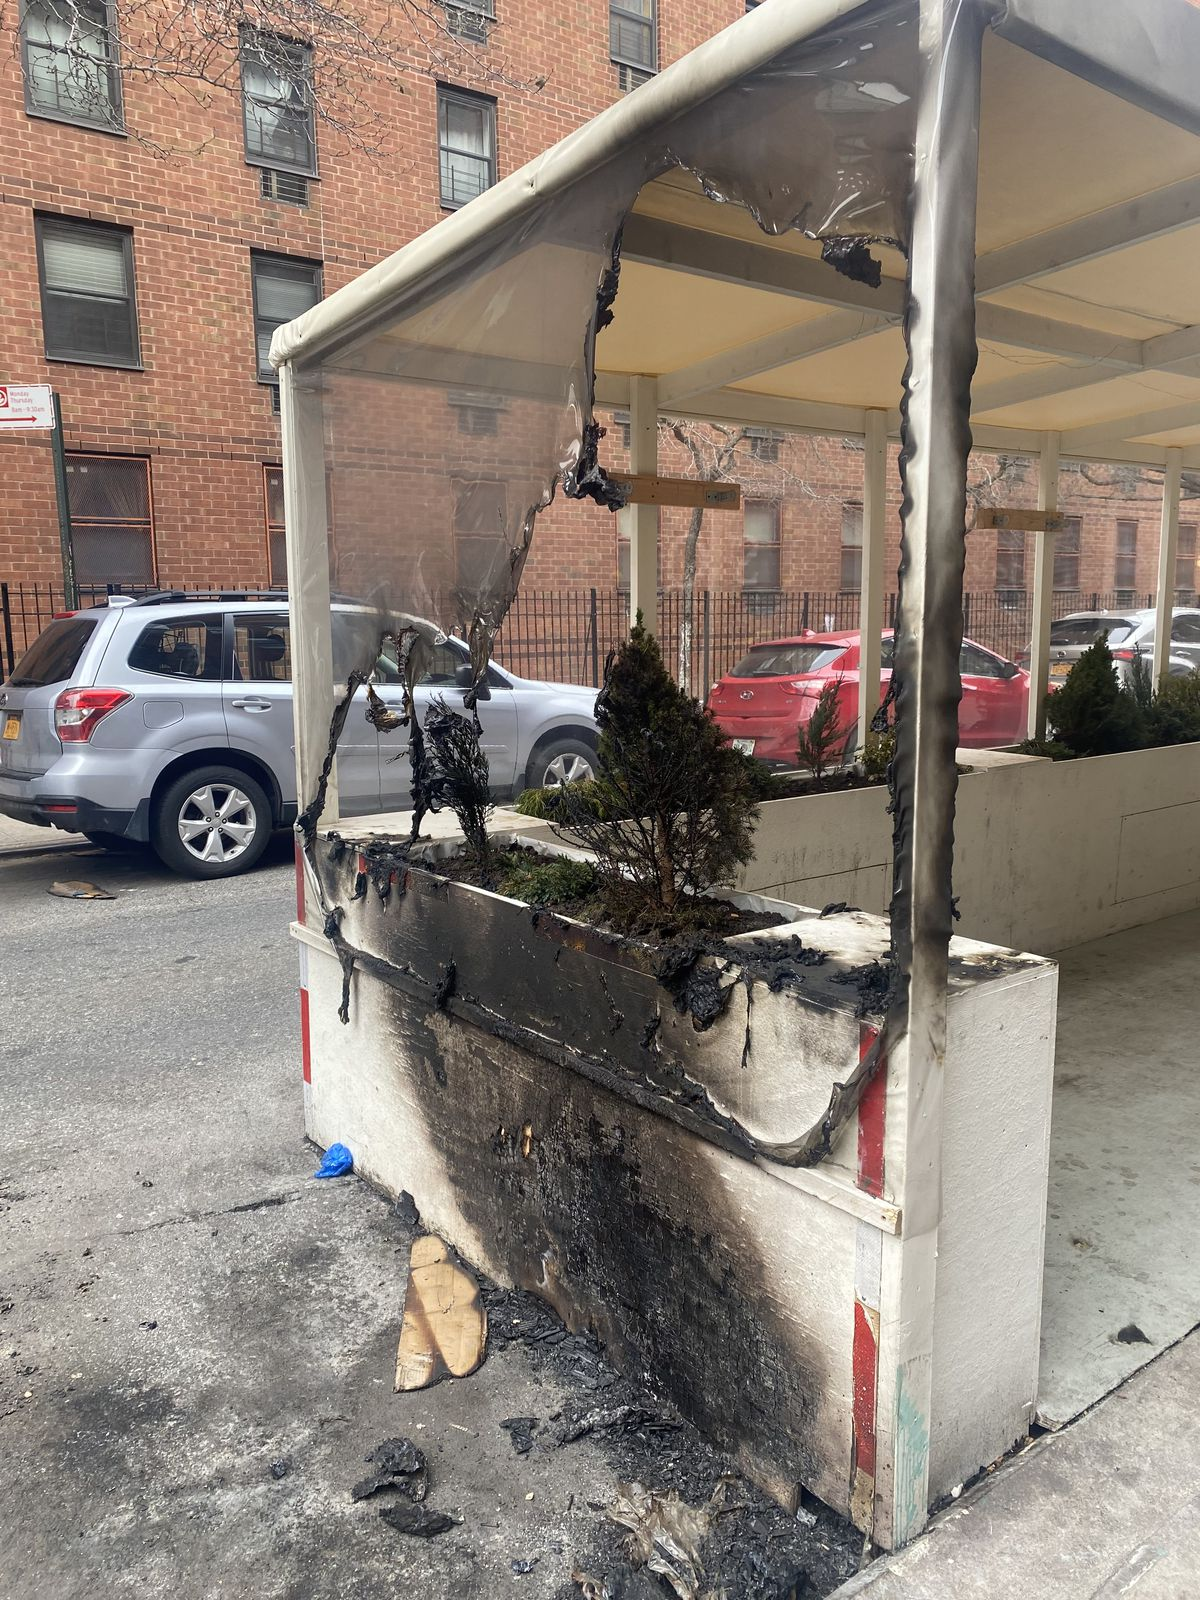 A wooden outdoor dining setup is destroyed after what appears to be a recent fire